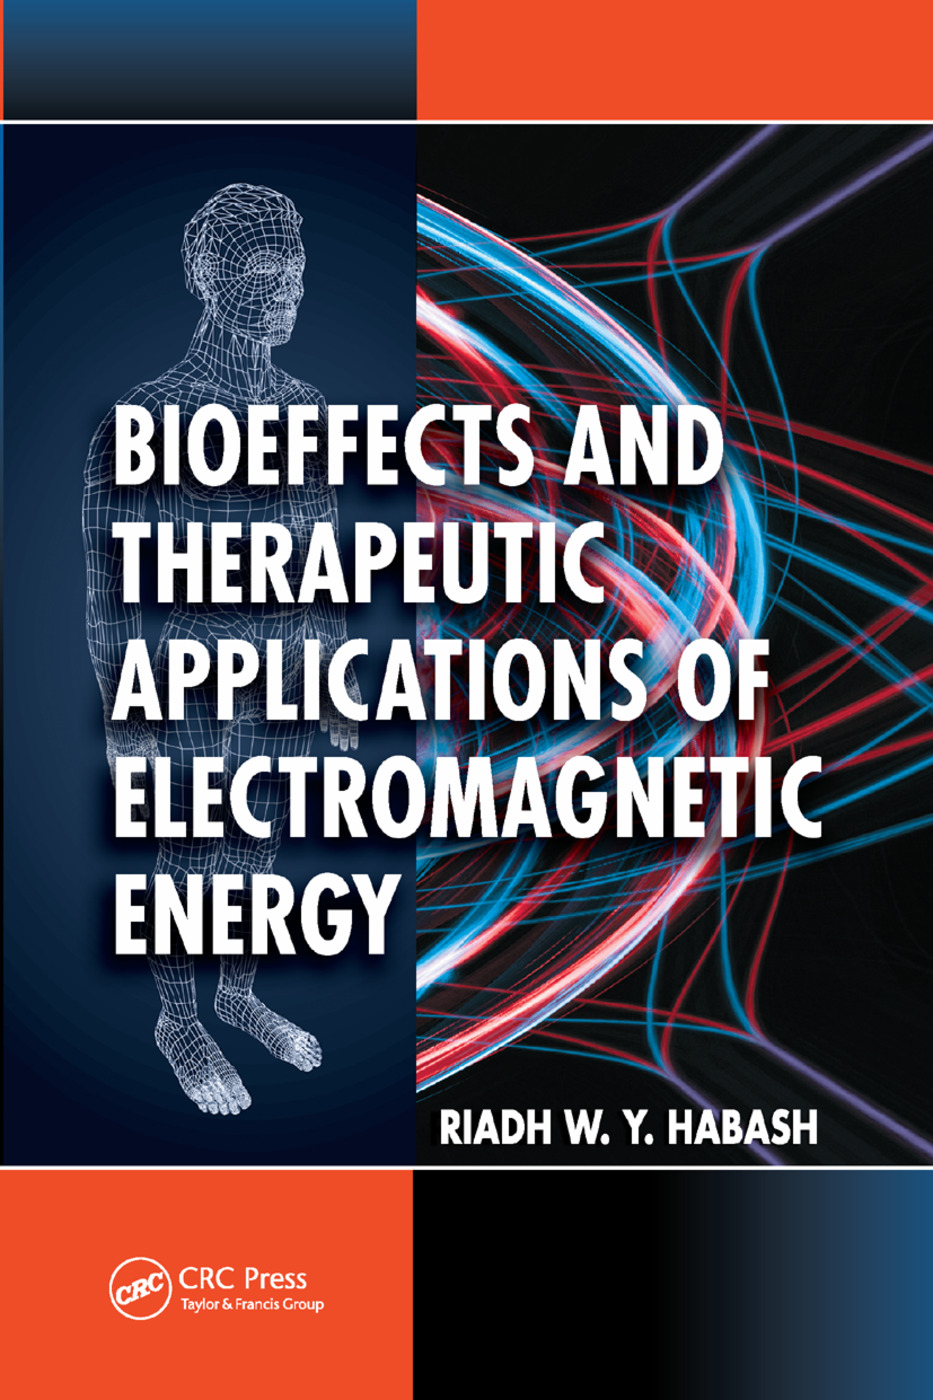 Bioeffects and Therapeutic Applications of Electromagnetic Energy: 1st Edition (Paperback) book cover